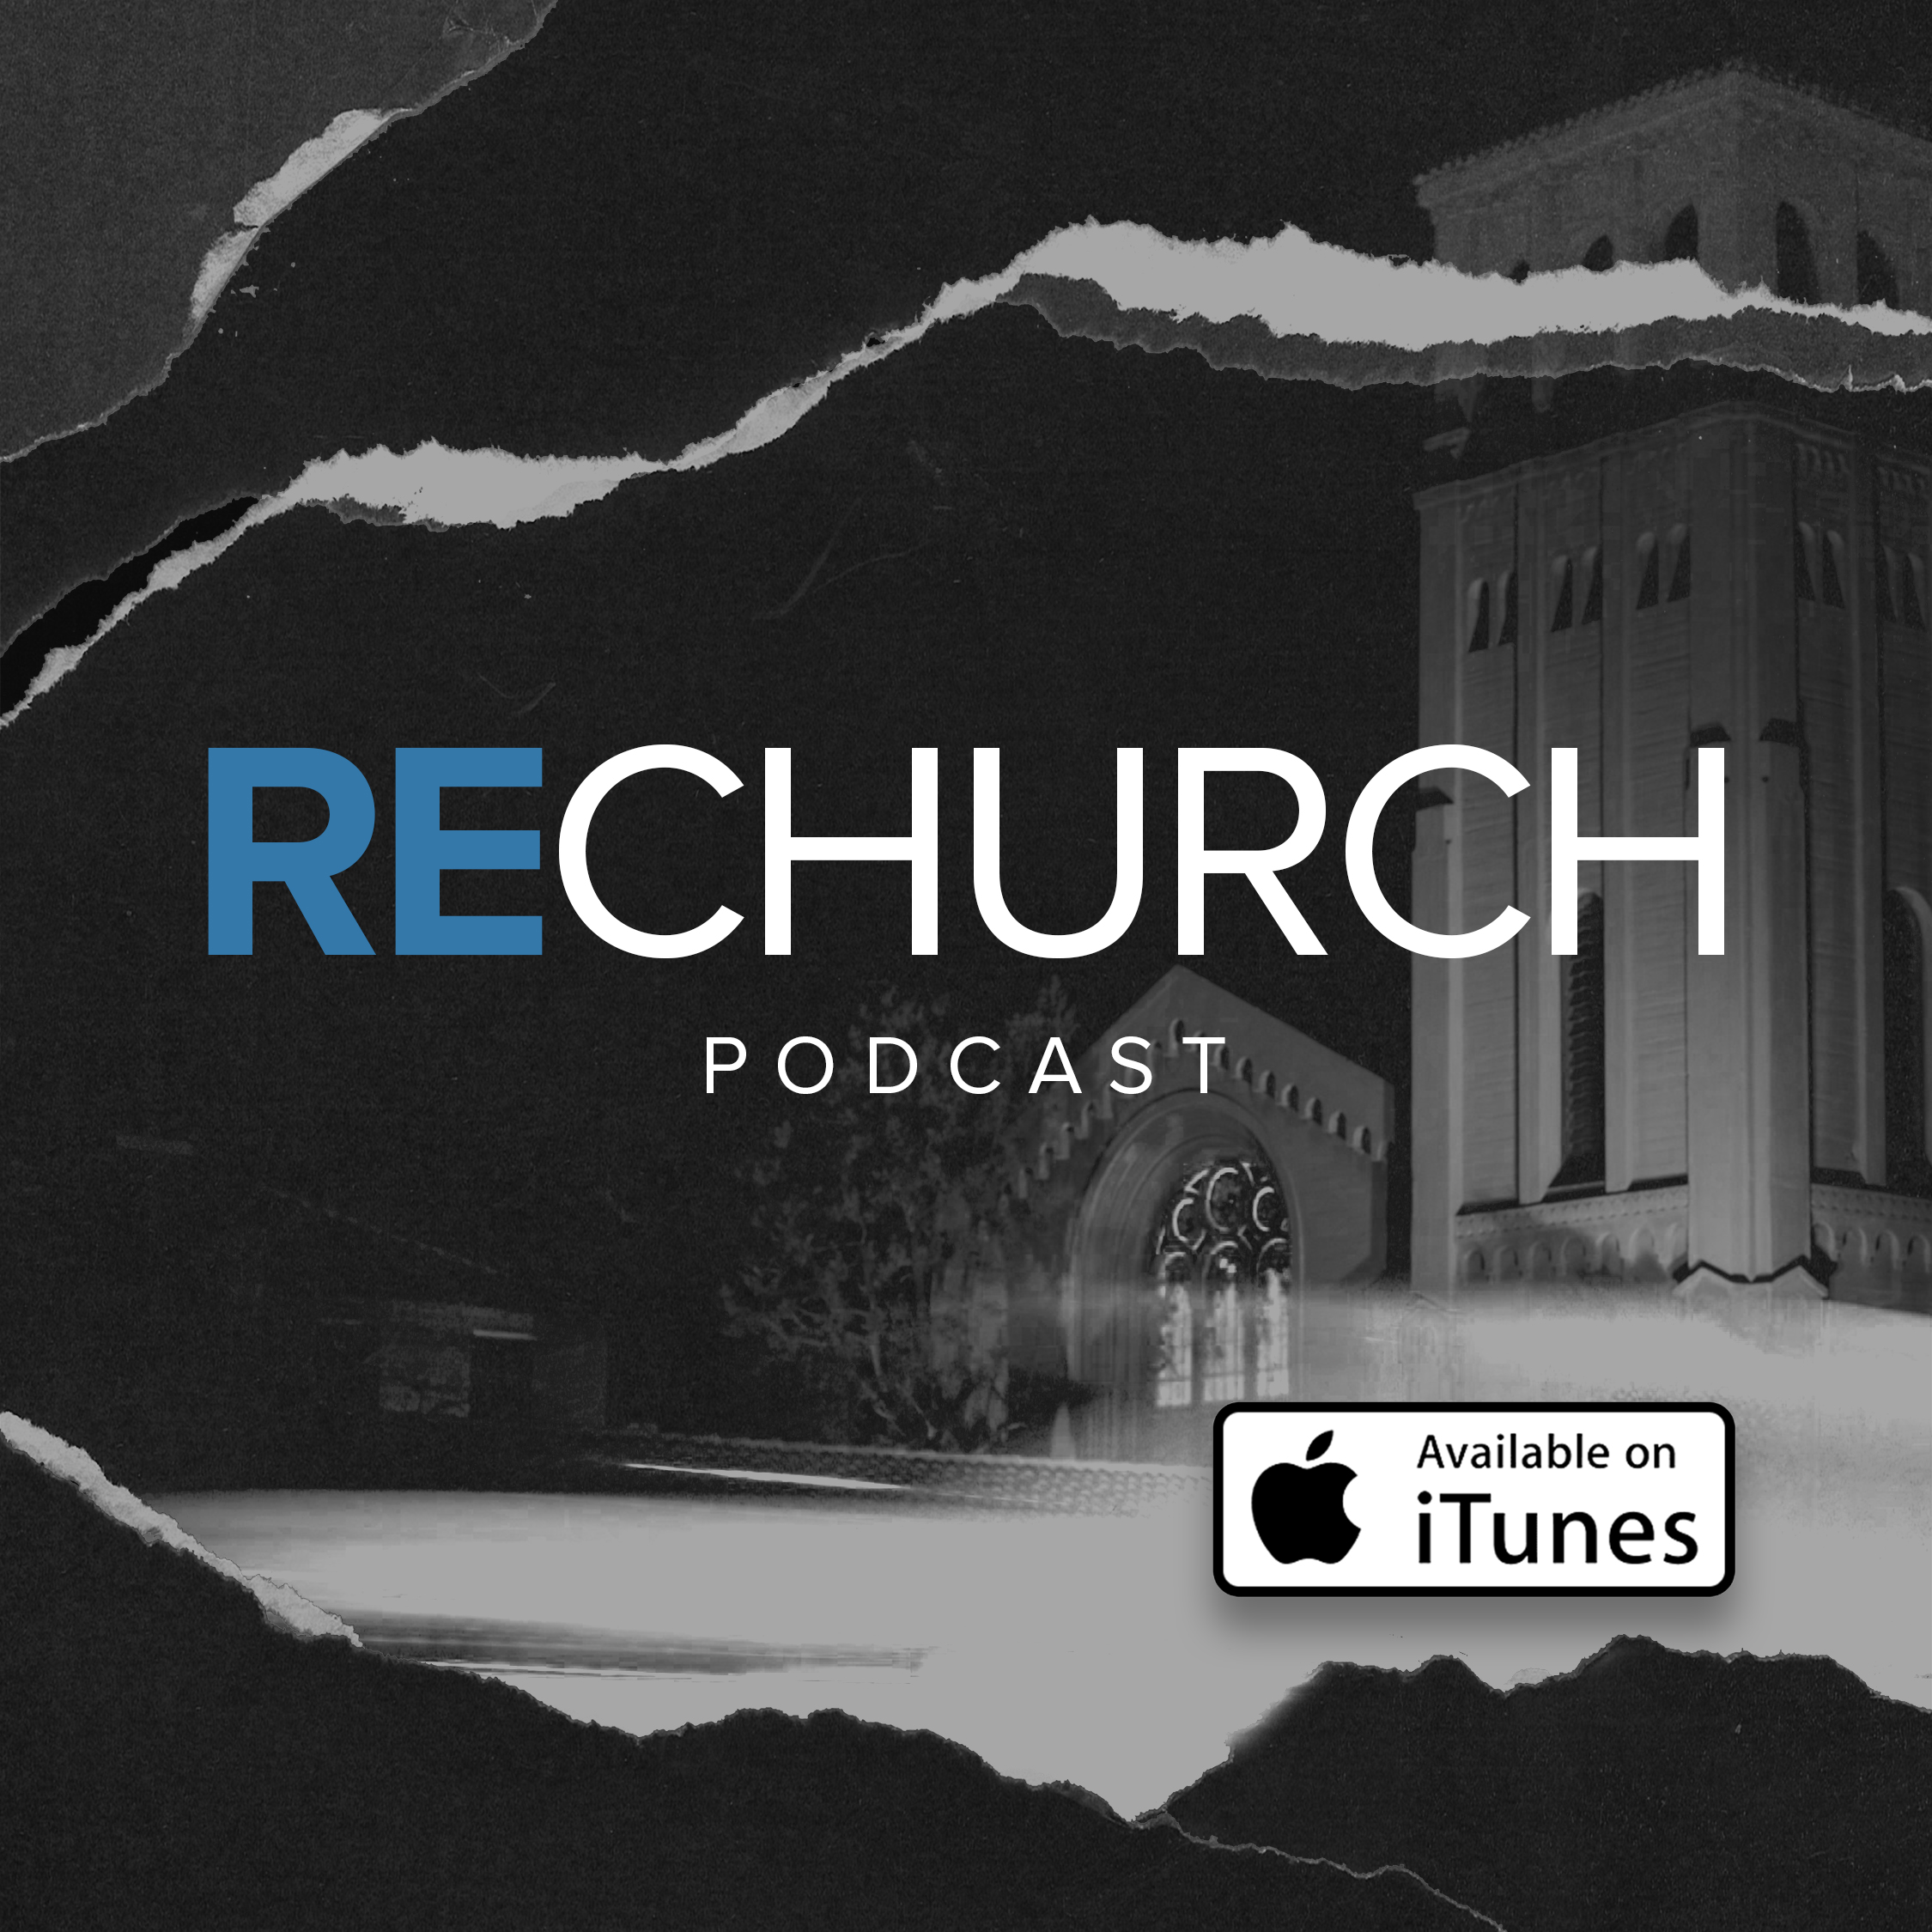 rechurch_podcast_artwork.jpg